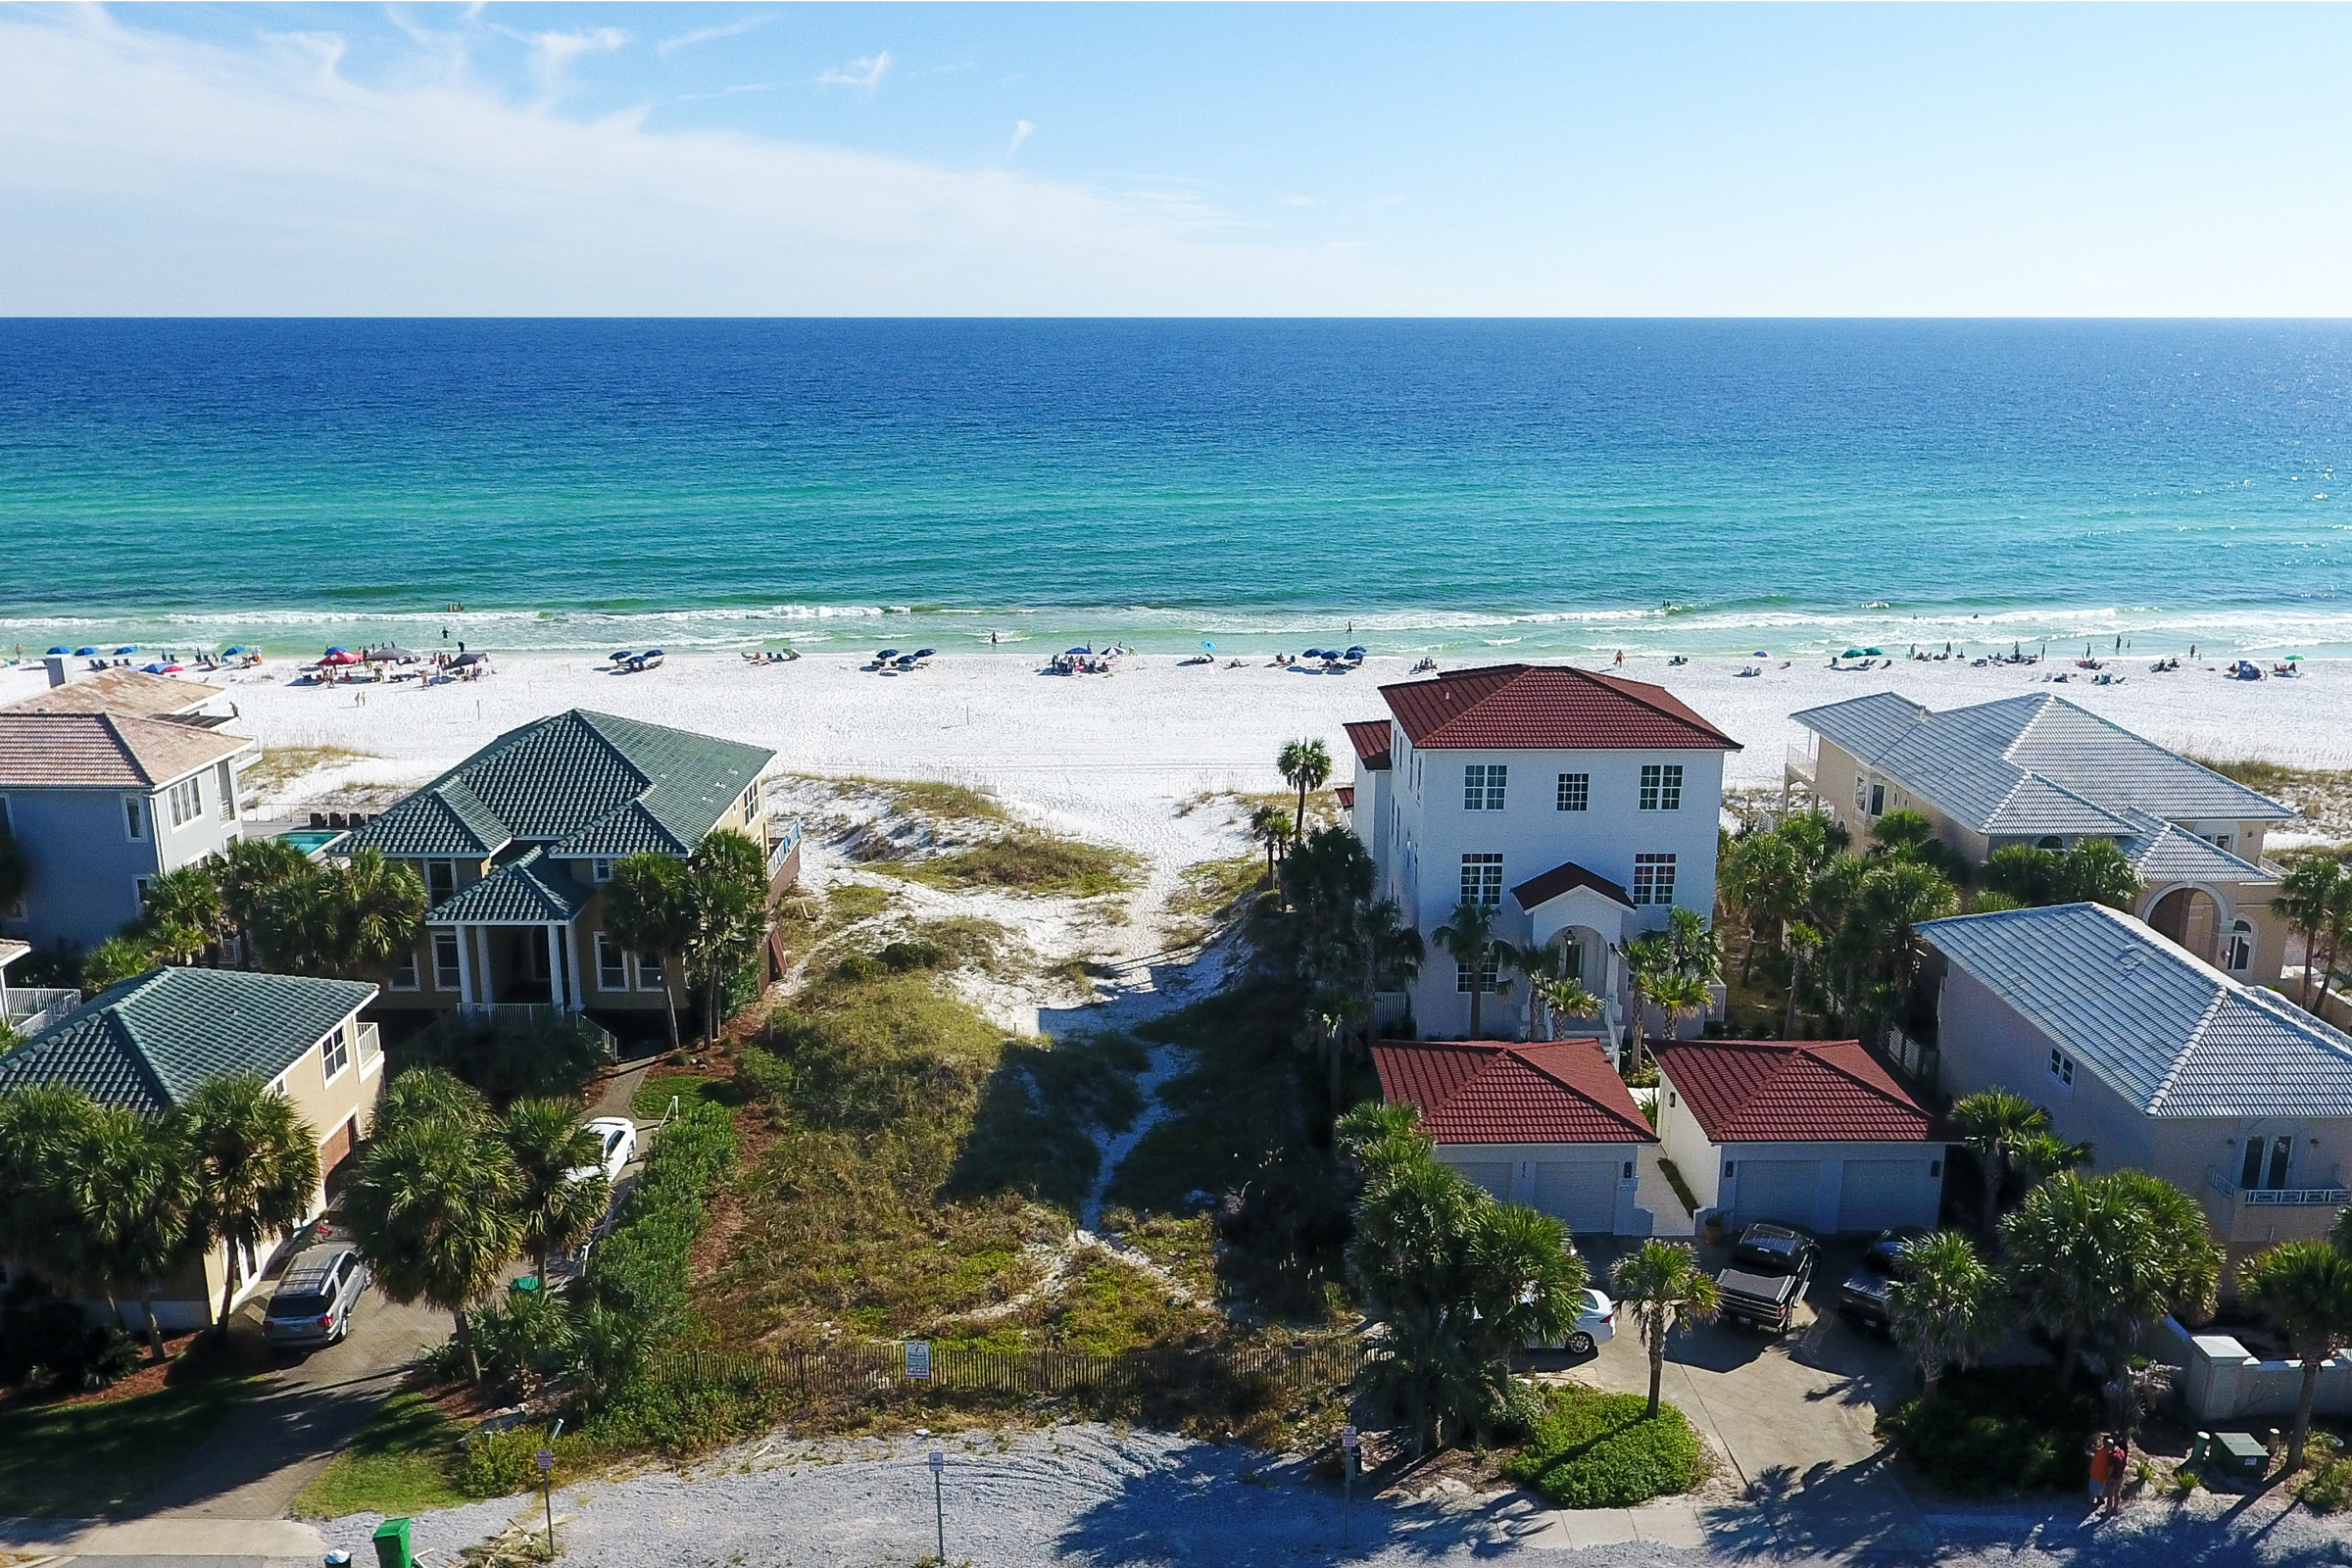 Земля для того Продажа на PROMINENT GULF-FRONT DESTIN HOME SITE 2980 Scenic Highway 98 Destin, Флорида, 32541 Соединенные Штаты